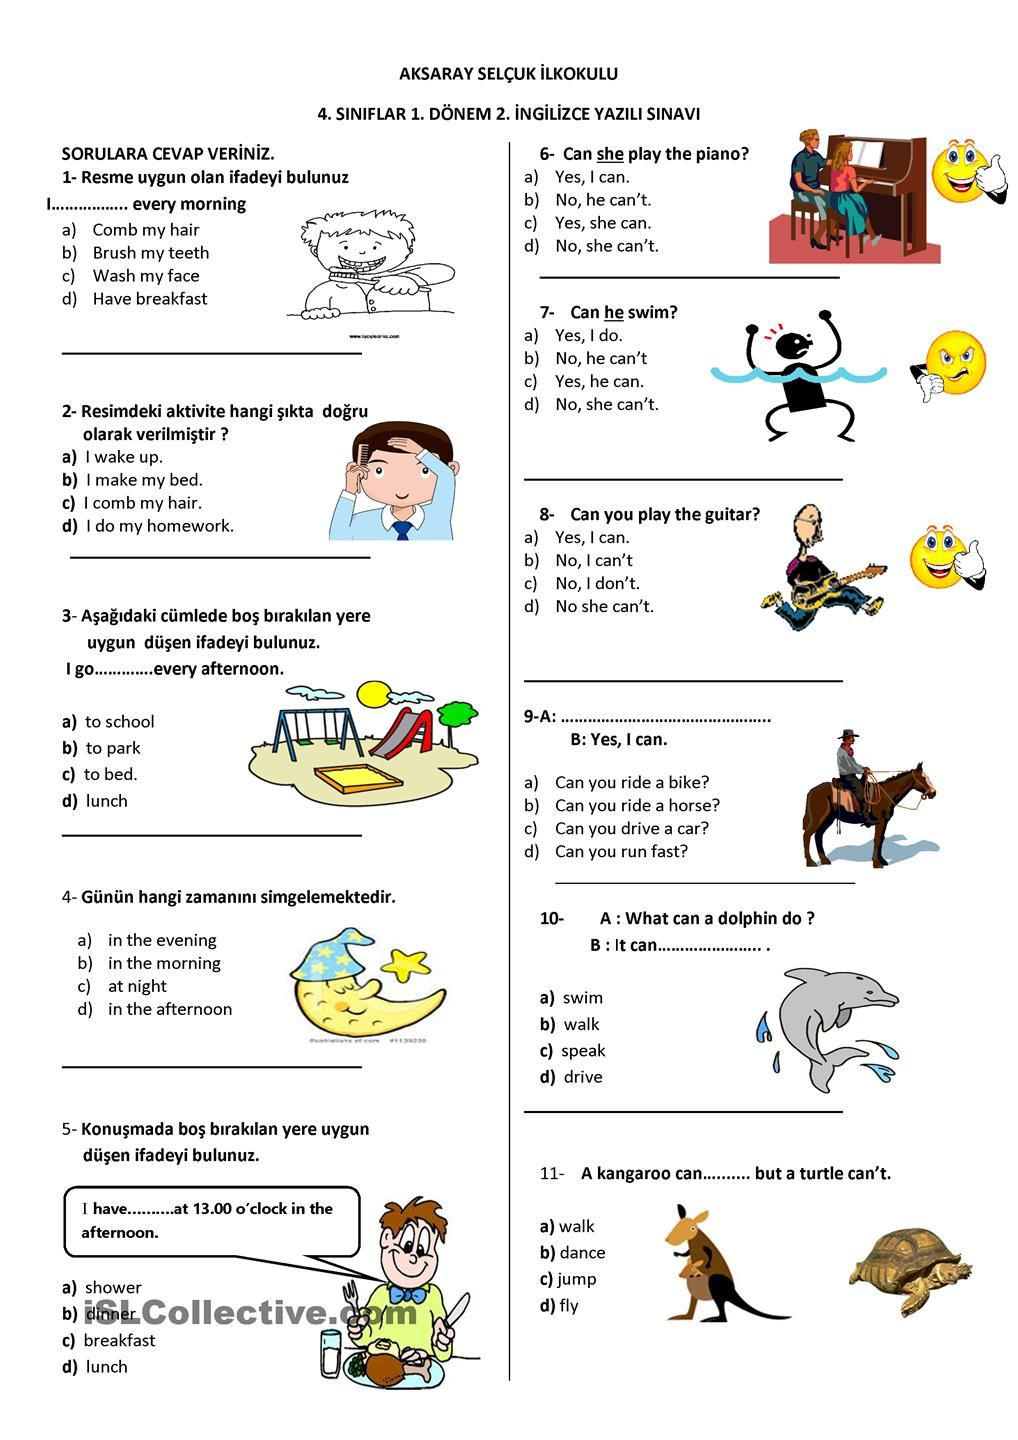 Worksheet For 4th Grades English exam, Teaching english